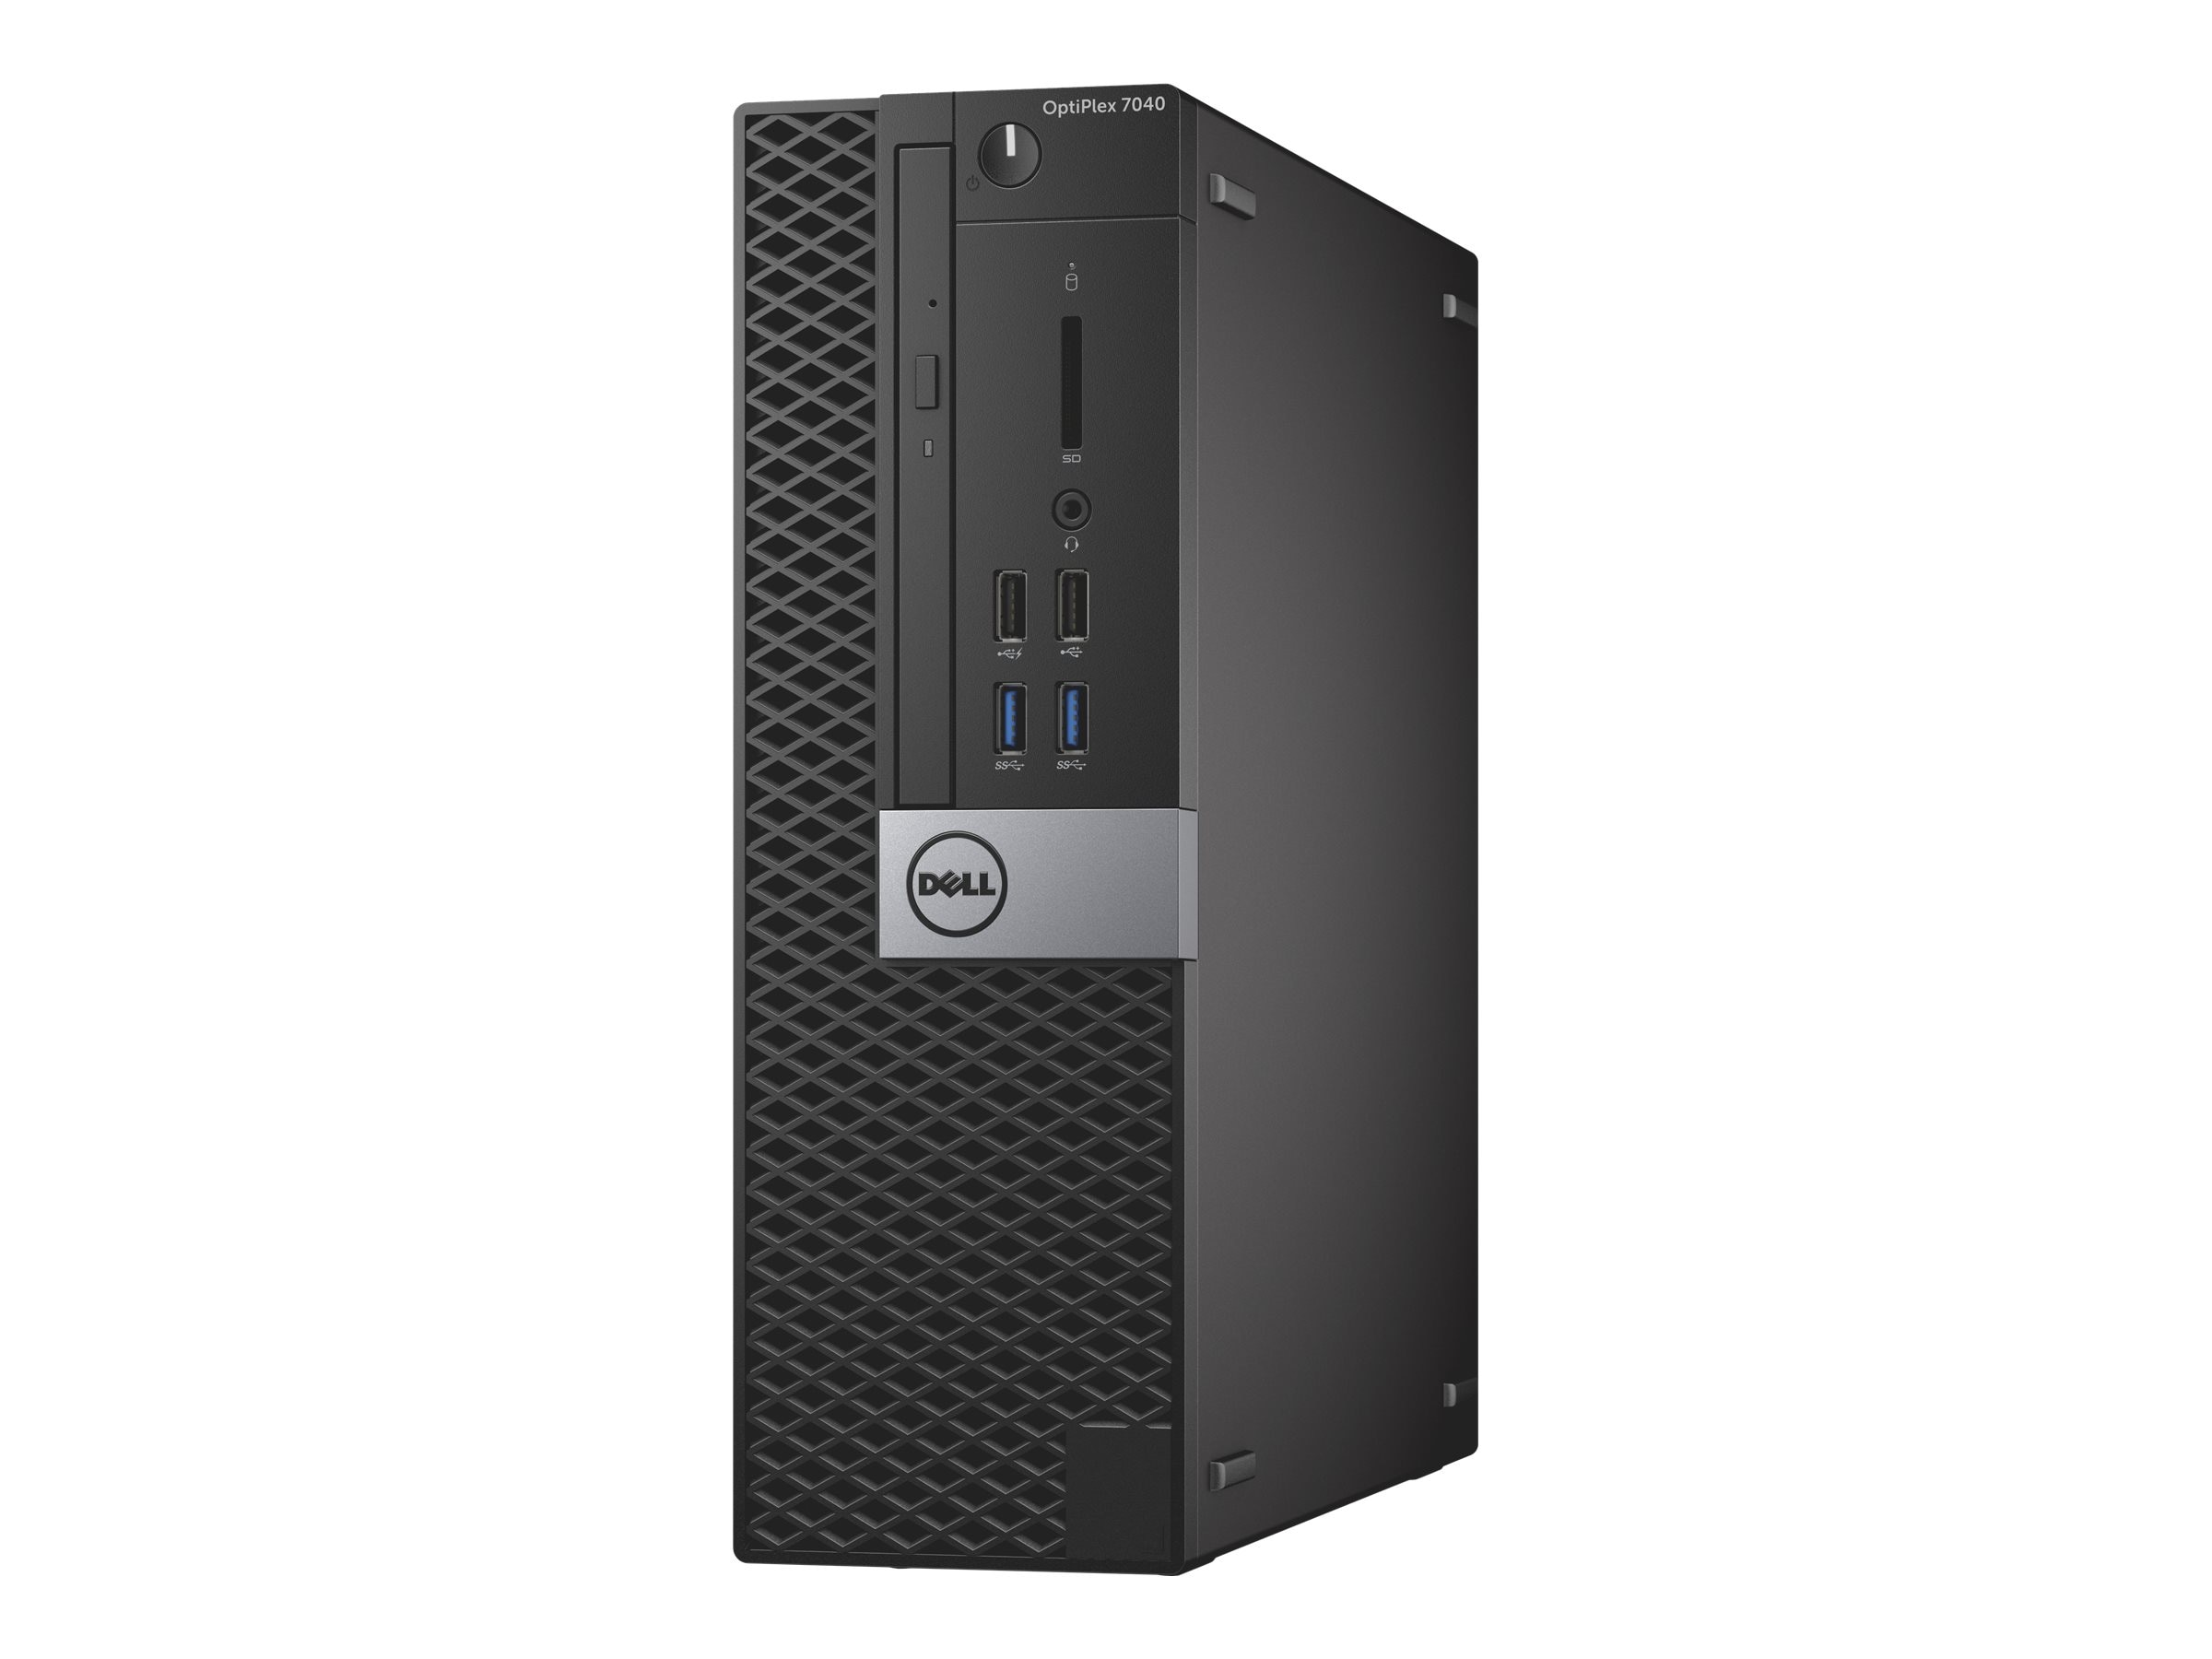 Dell OptiPlex 7040 3.2GHz Core i5 4GB RAM 500GB hard drive